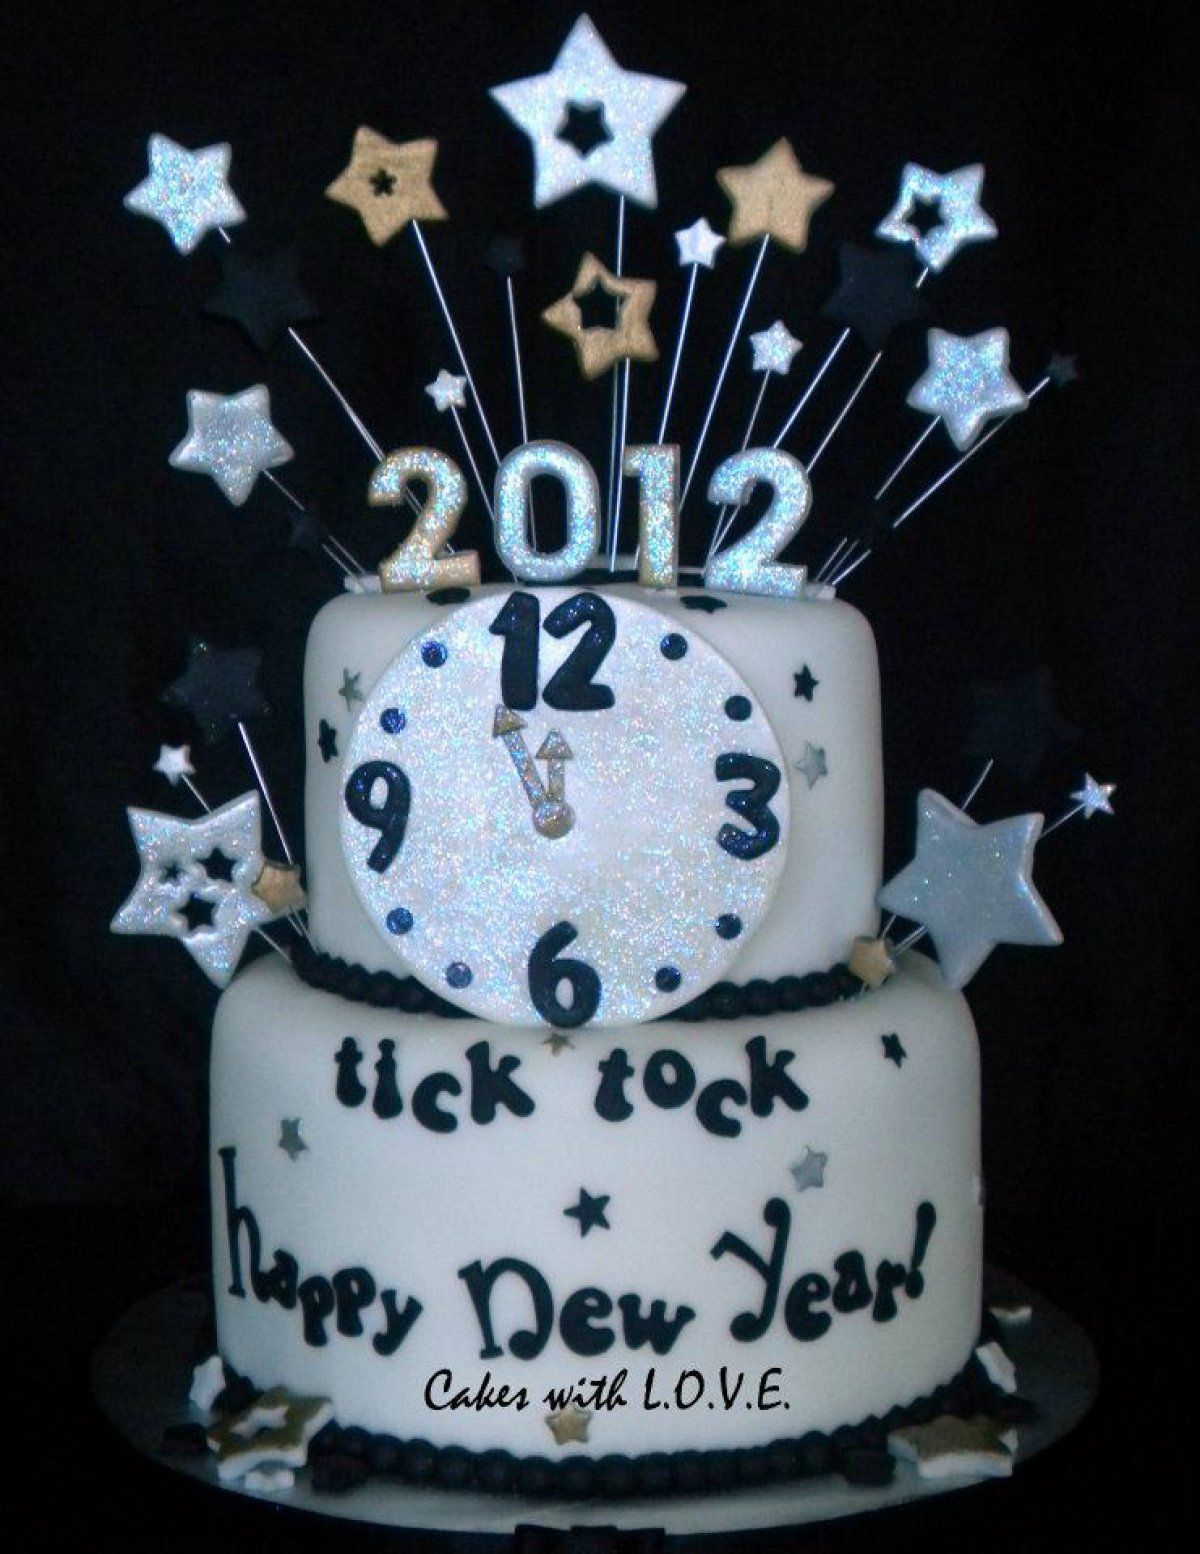 Tic Toc Happy New Year Cake